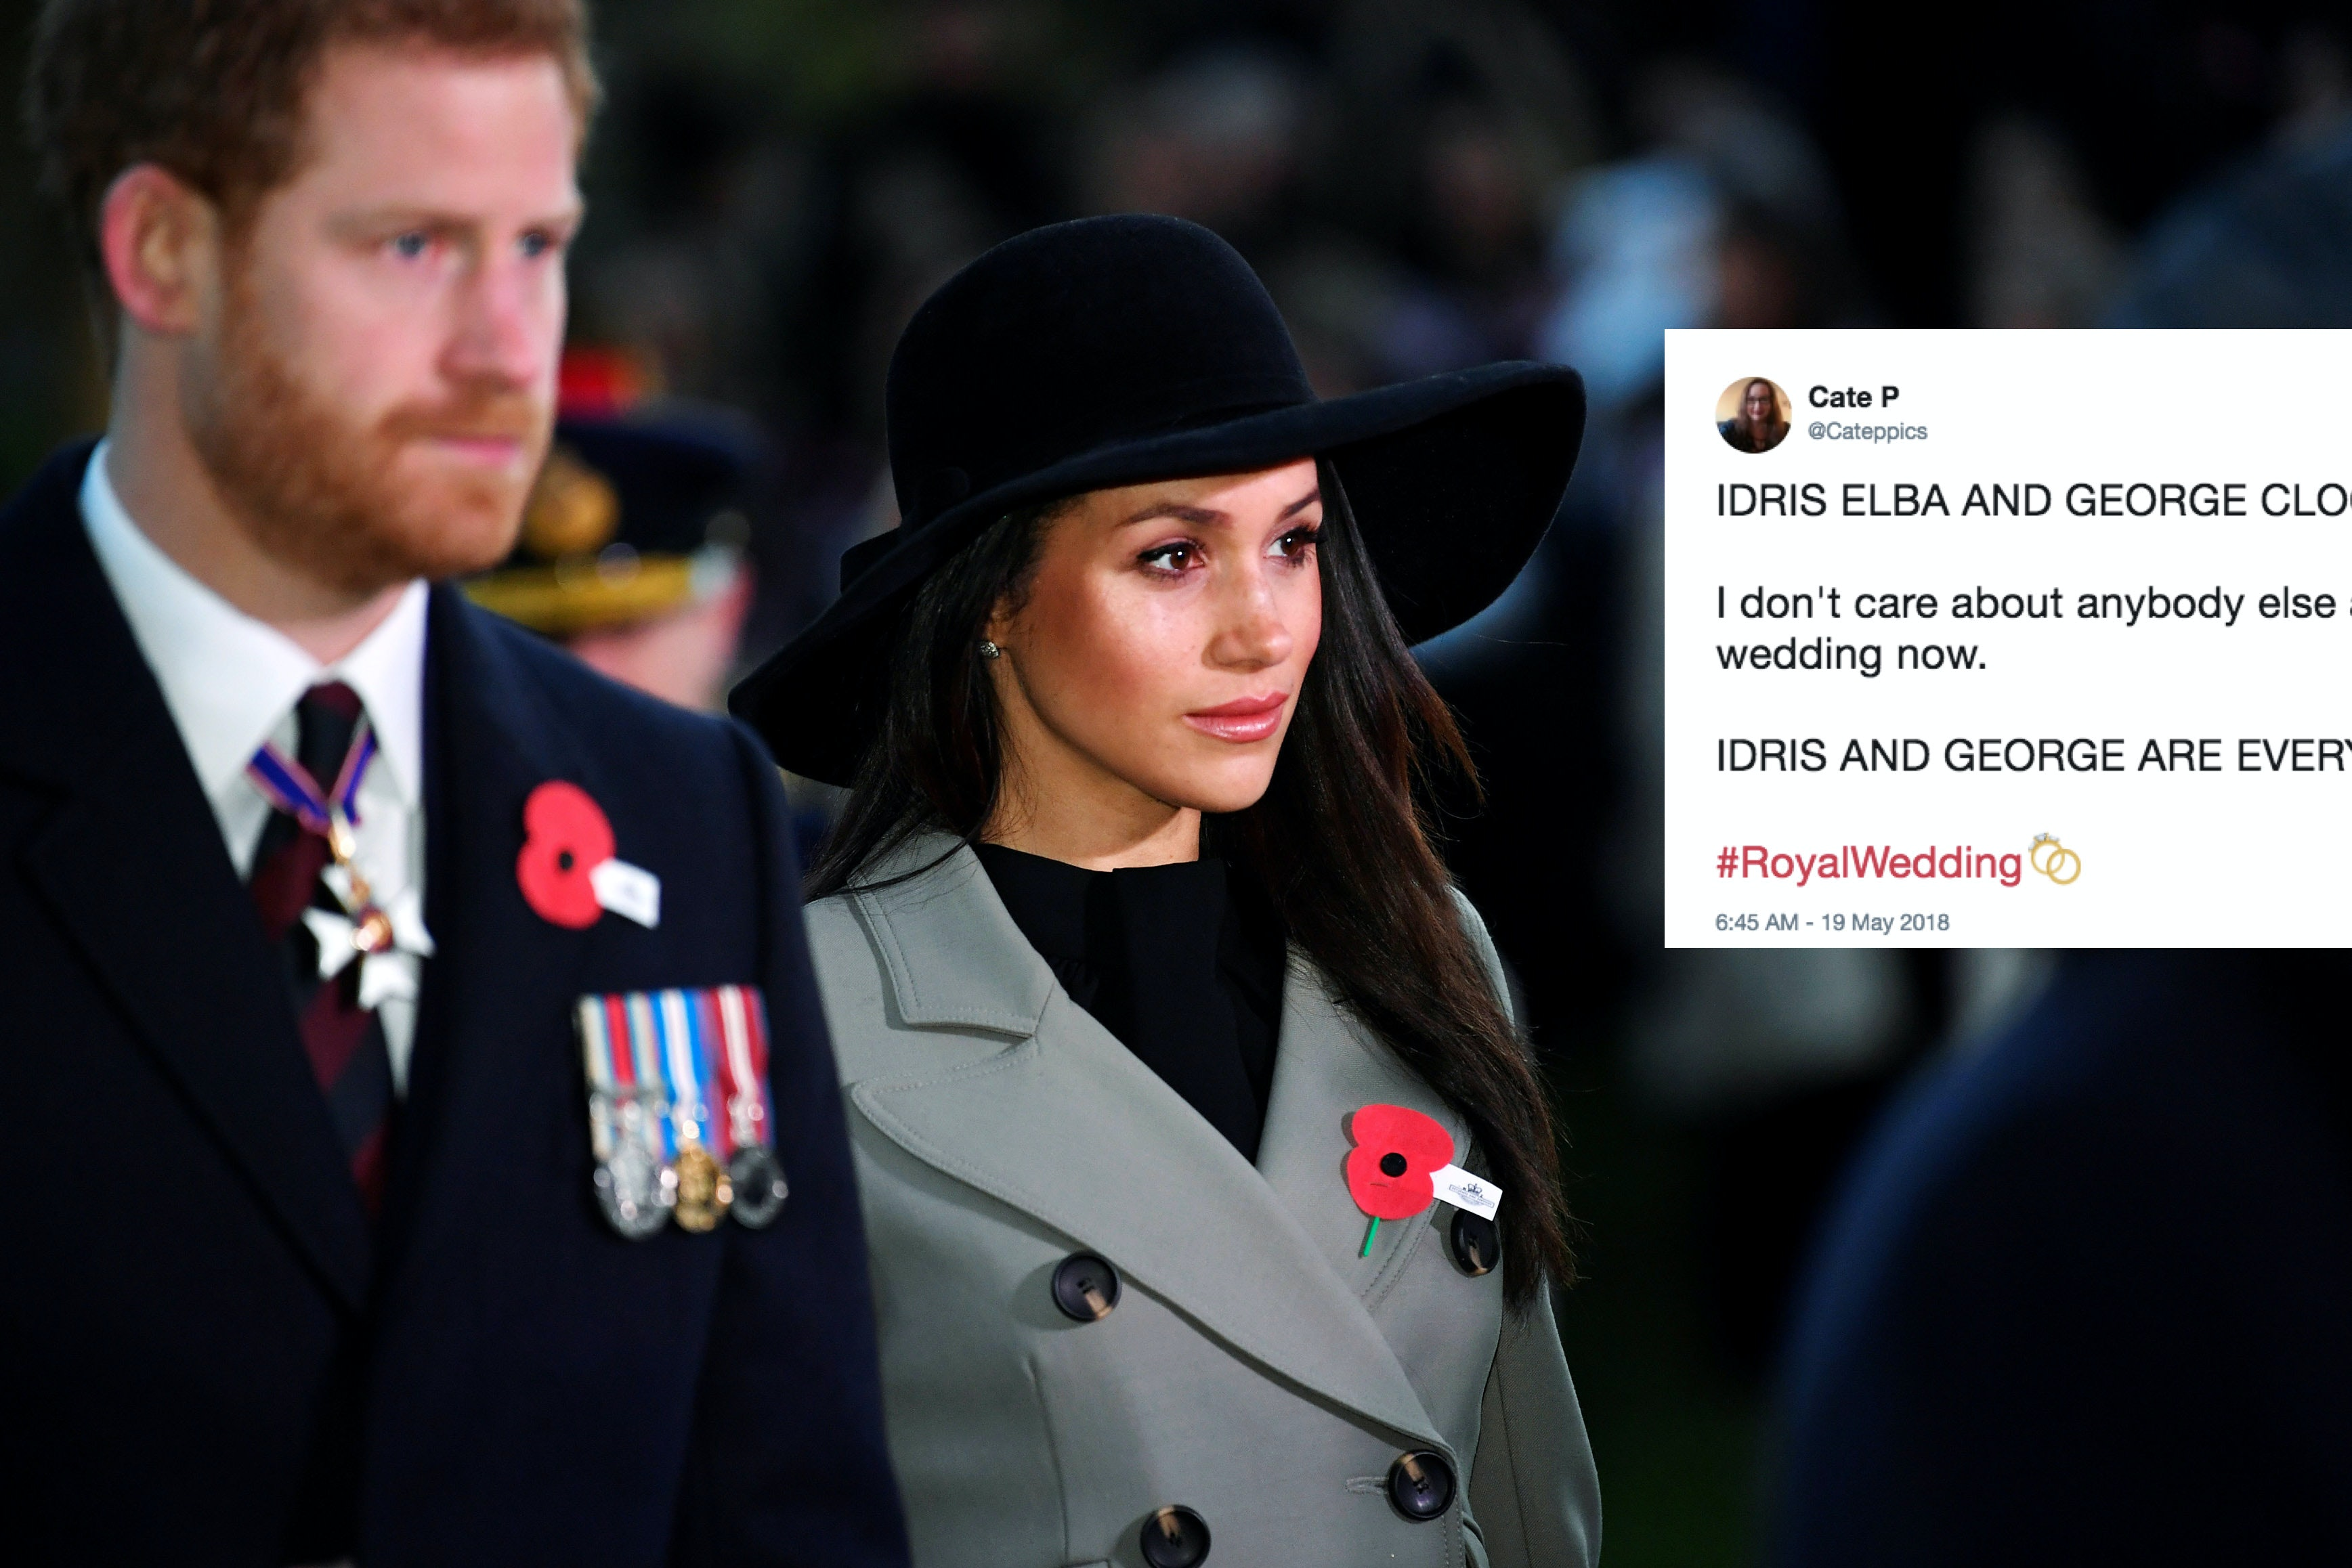 Royal Wedding Memes.These Royal Wedding Memes Tweets Capture All The Major Moments Of